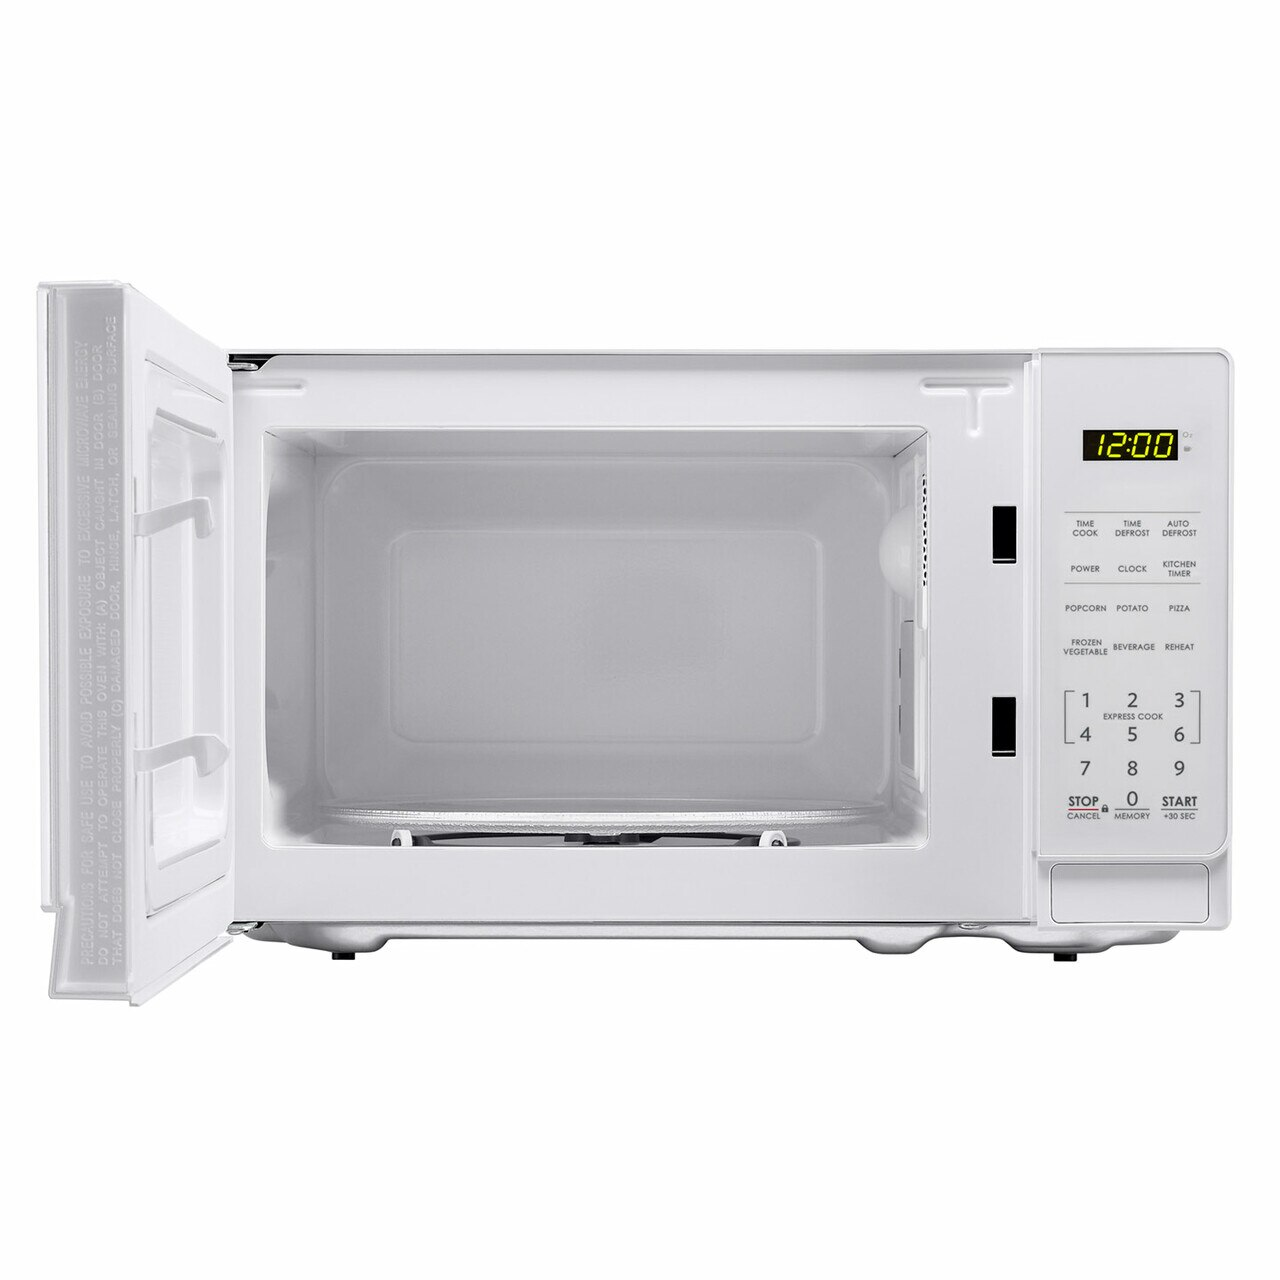 0.7 cu. ft. Sharp White Countertop Microwave (SMC0710BW) – front view with door open